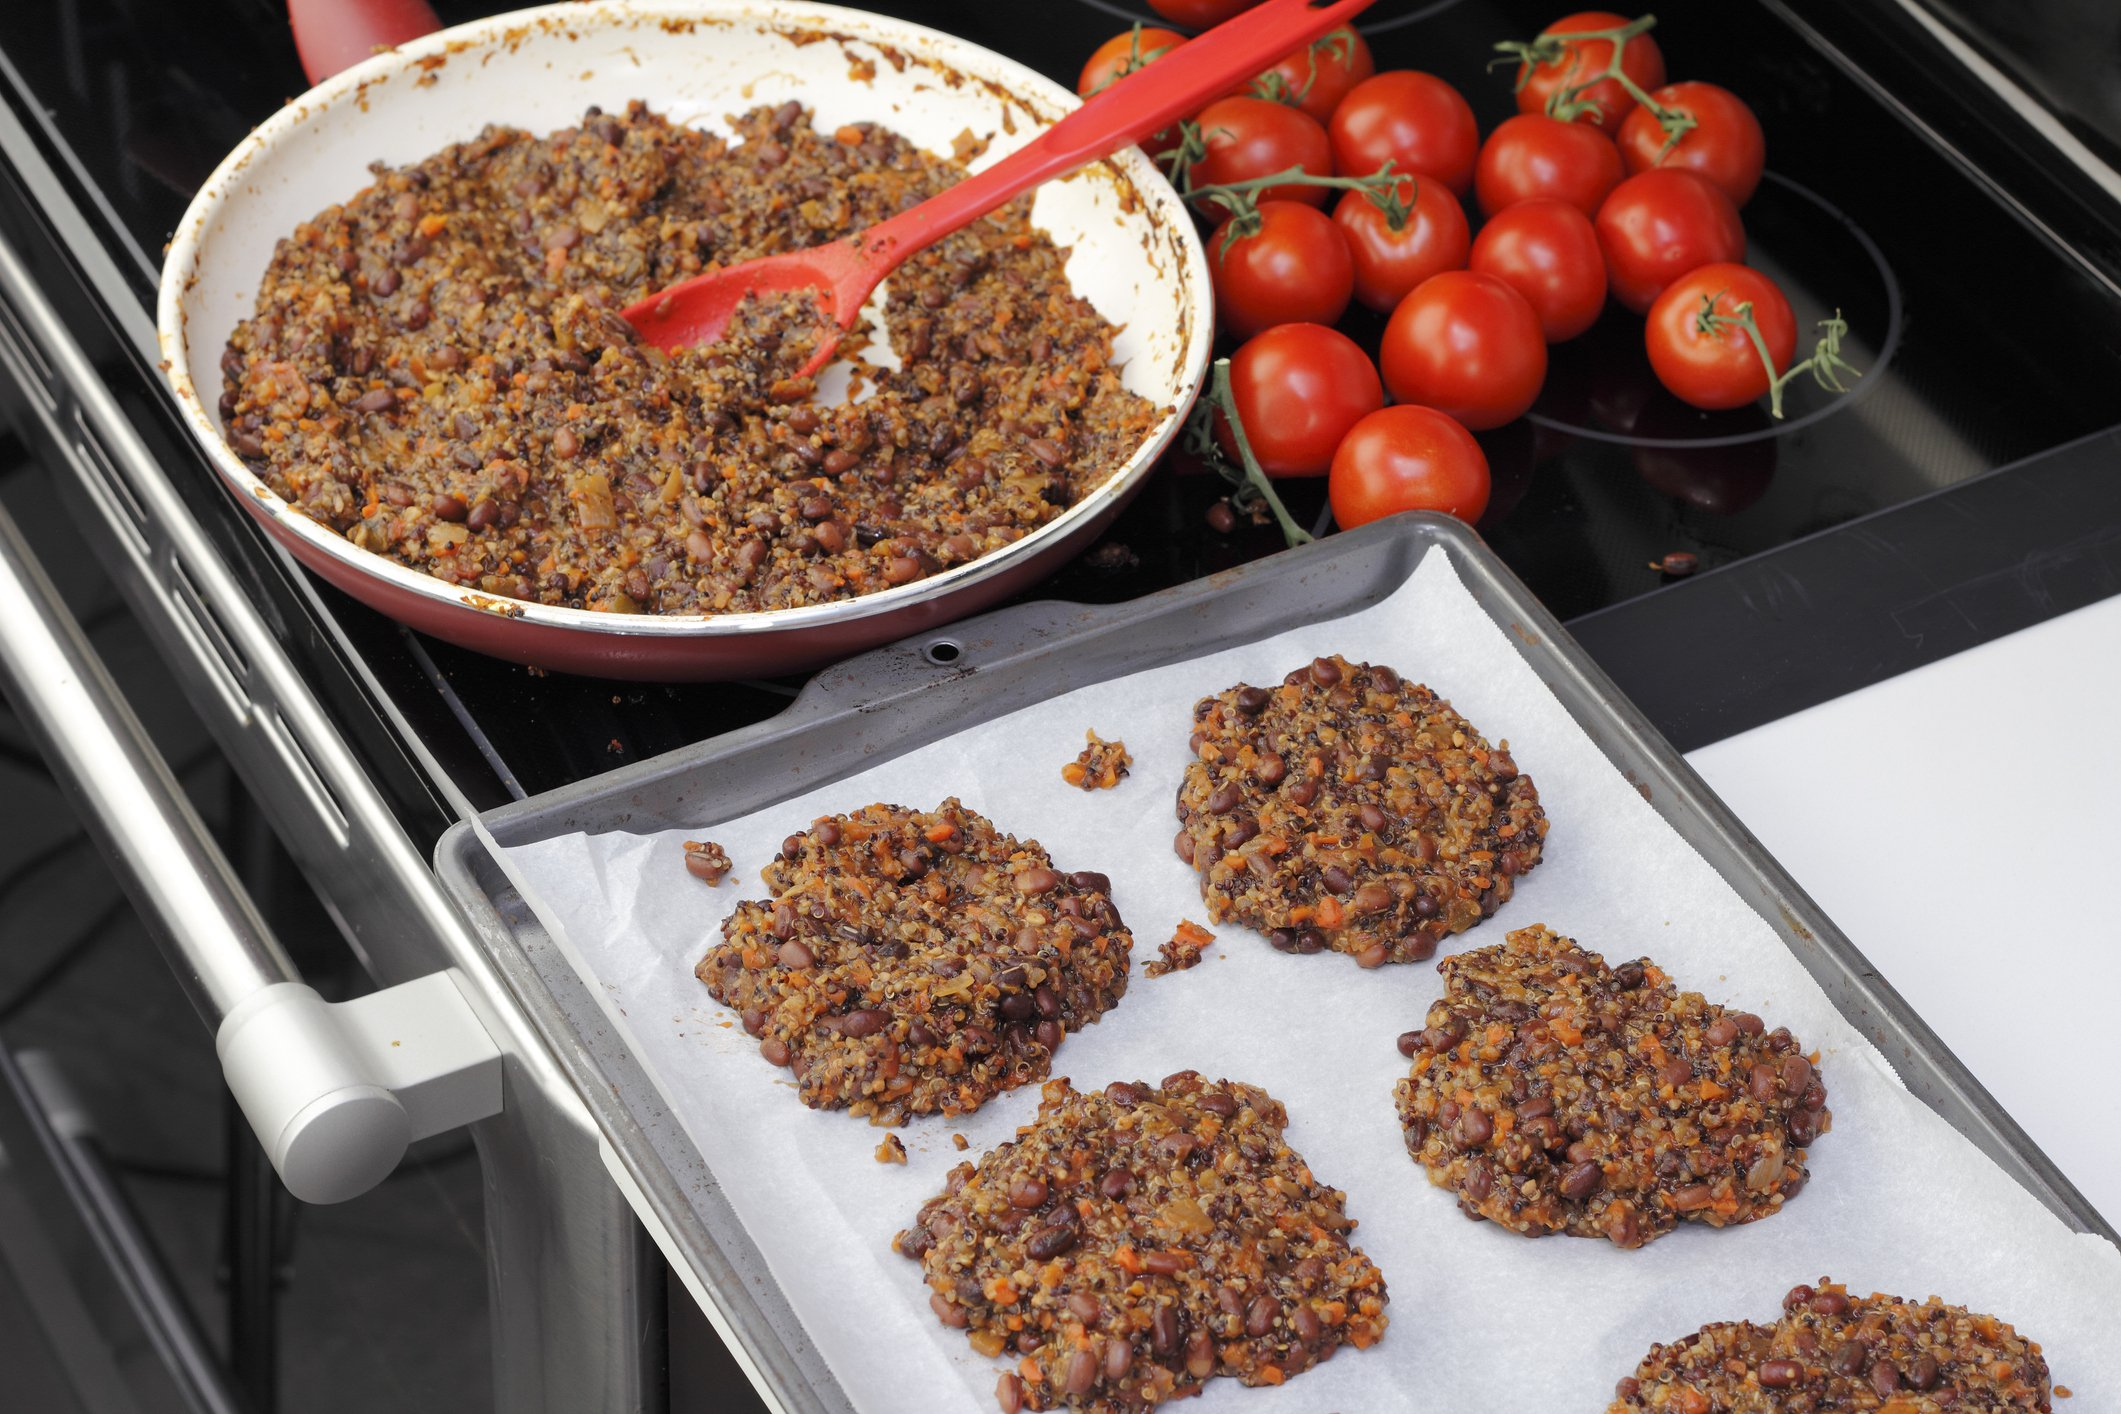 Parchment paper lined cookie sheet with quinoa and three bean veggie burgers ready to be cooked. Preparing tricolor bean and quinoa burgers recipe in the kitchen.